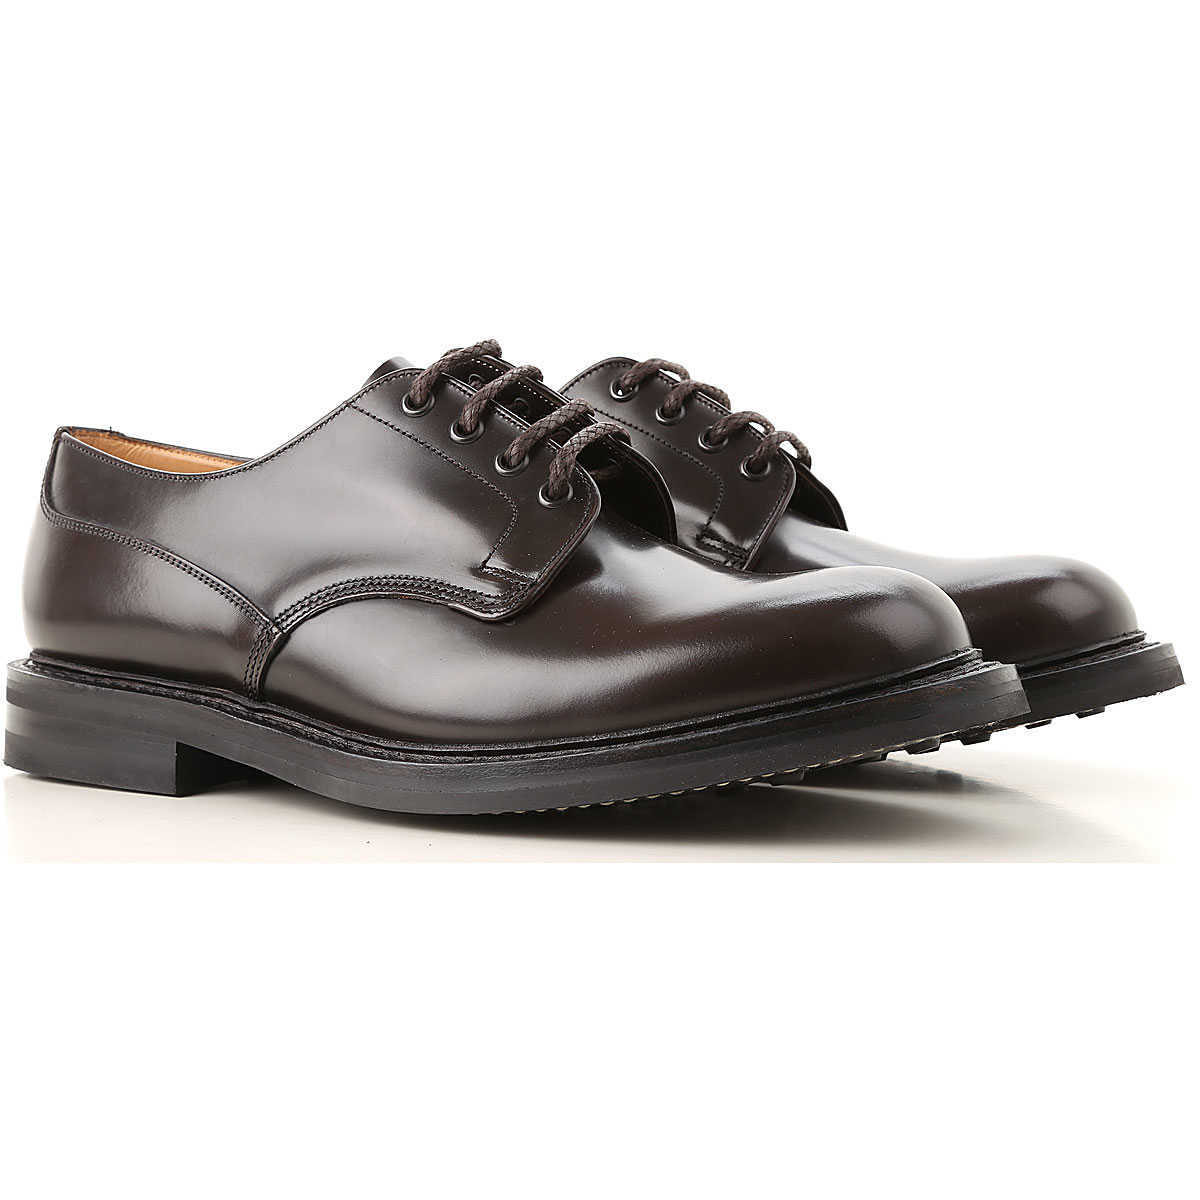 Church's Lace Up Shoes for Men Oxfords 10 8 9 Derbies and Brogues UK - GOOFASH